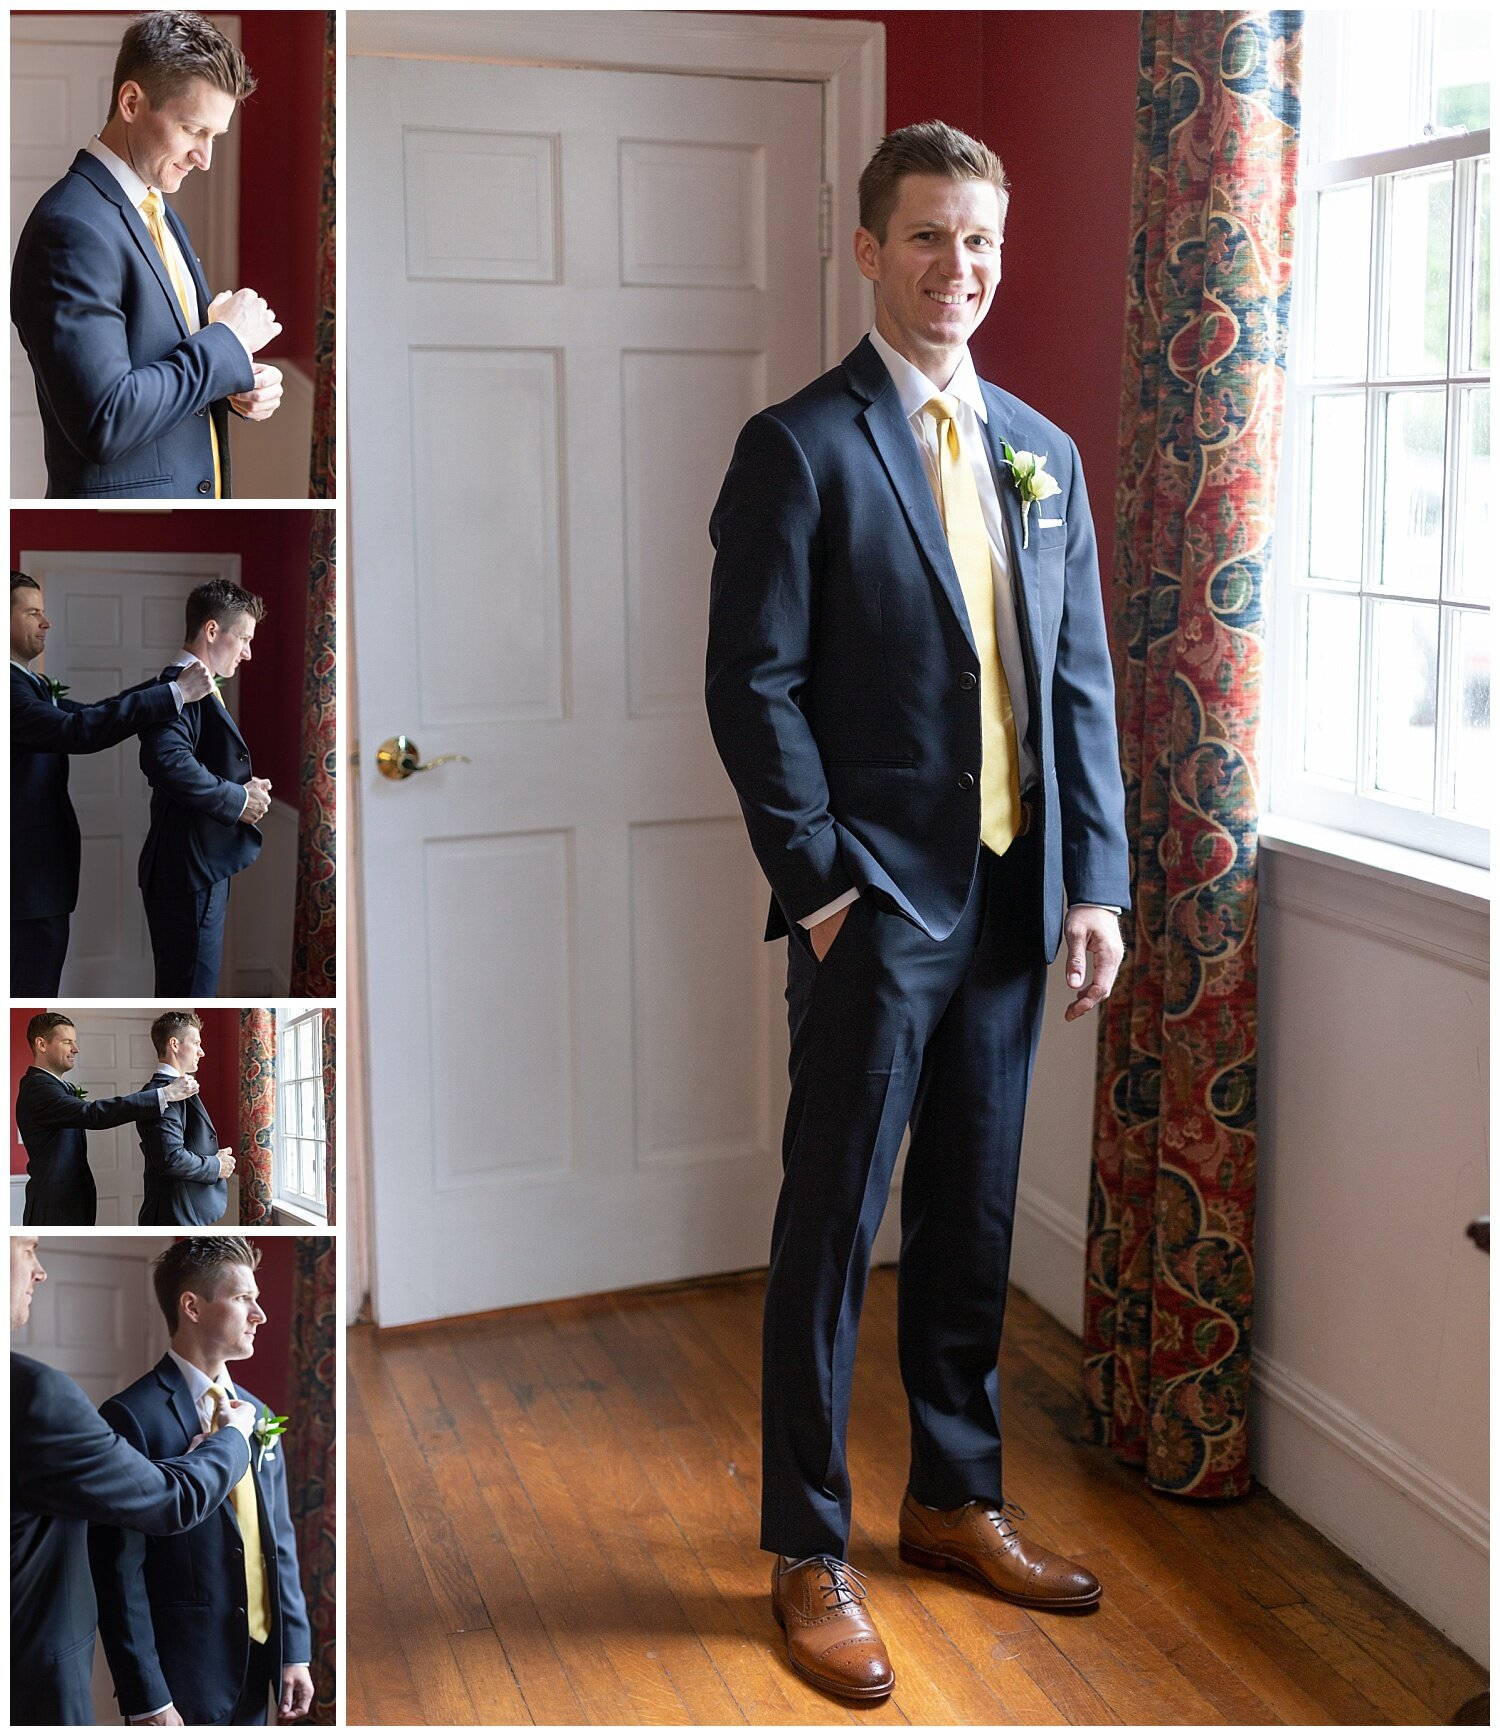 Ryan looks so sharp in his Navy suit! Such a timeless groom look.